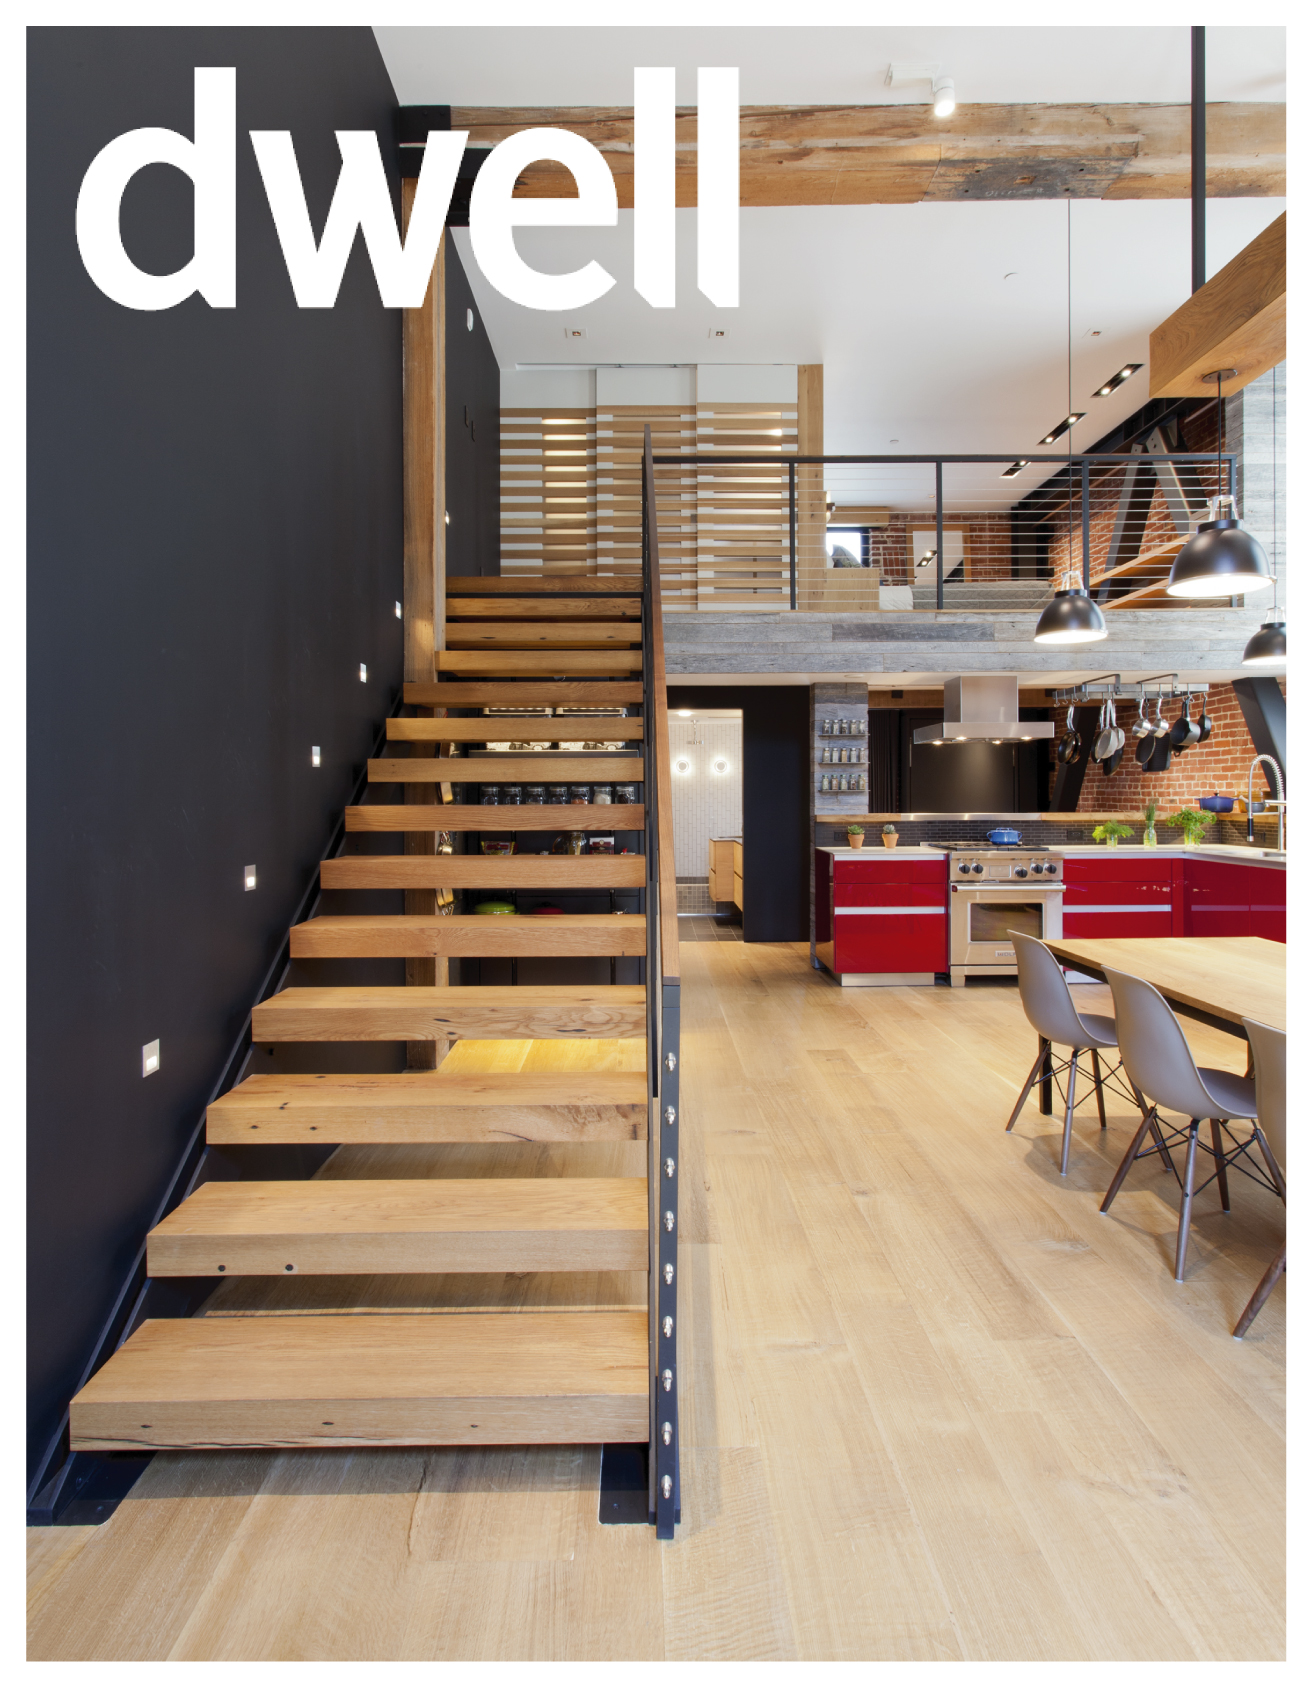 Dwell_Dogpatch_8.5x11_OPT2_no title.jpg